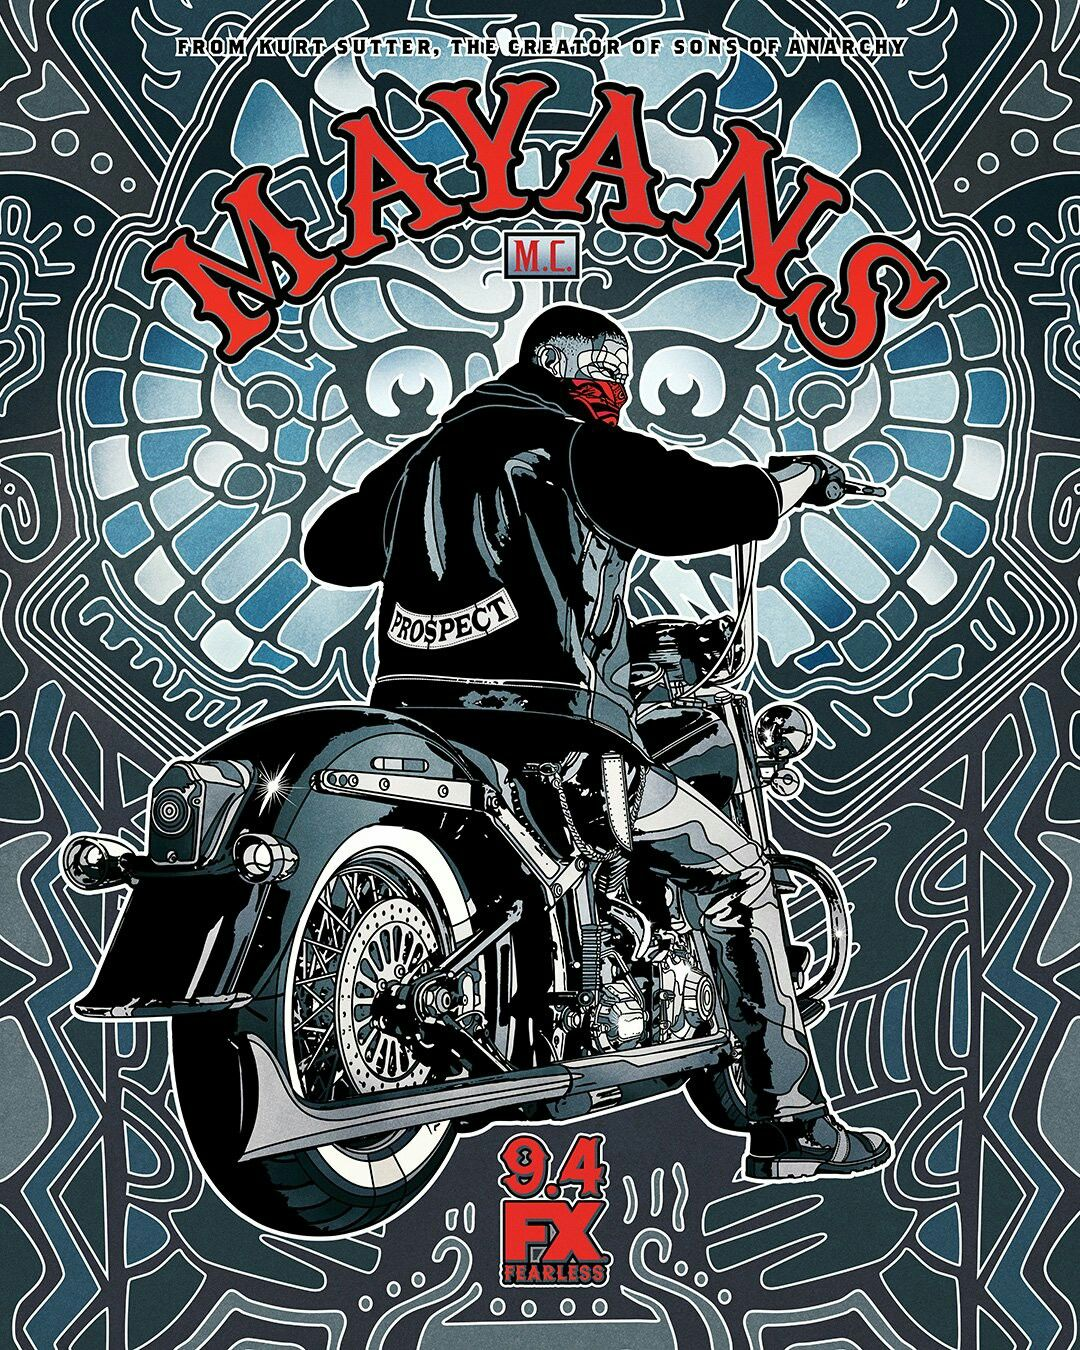 Mayans Tv Show Sons Of Anarchy SOA Motorcycle T-Shirt